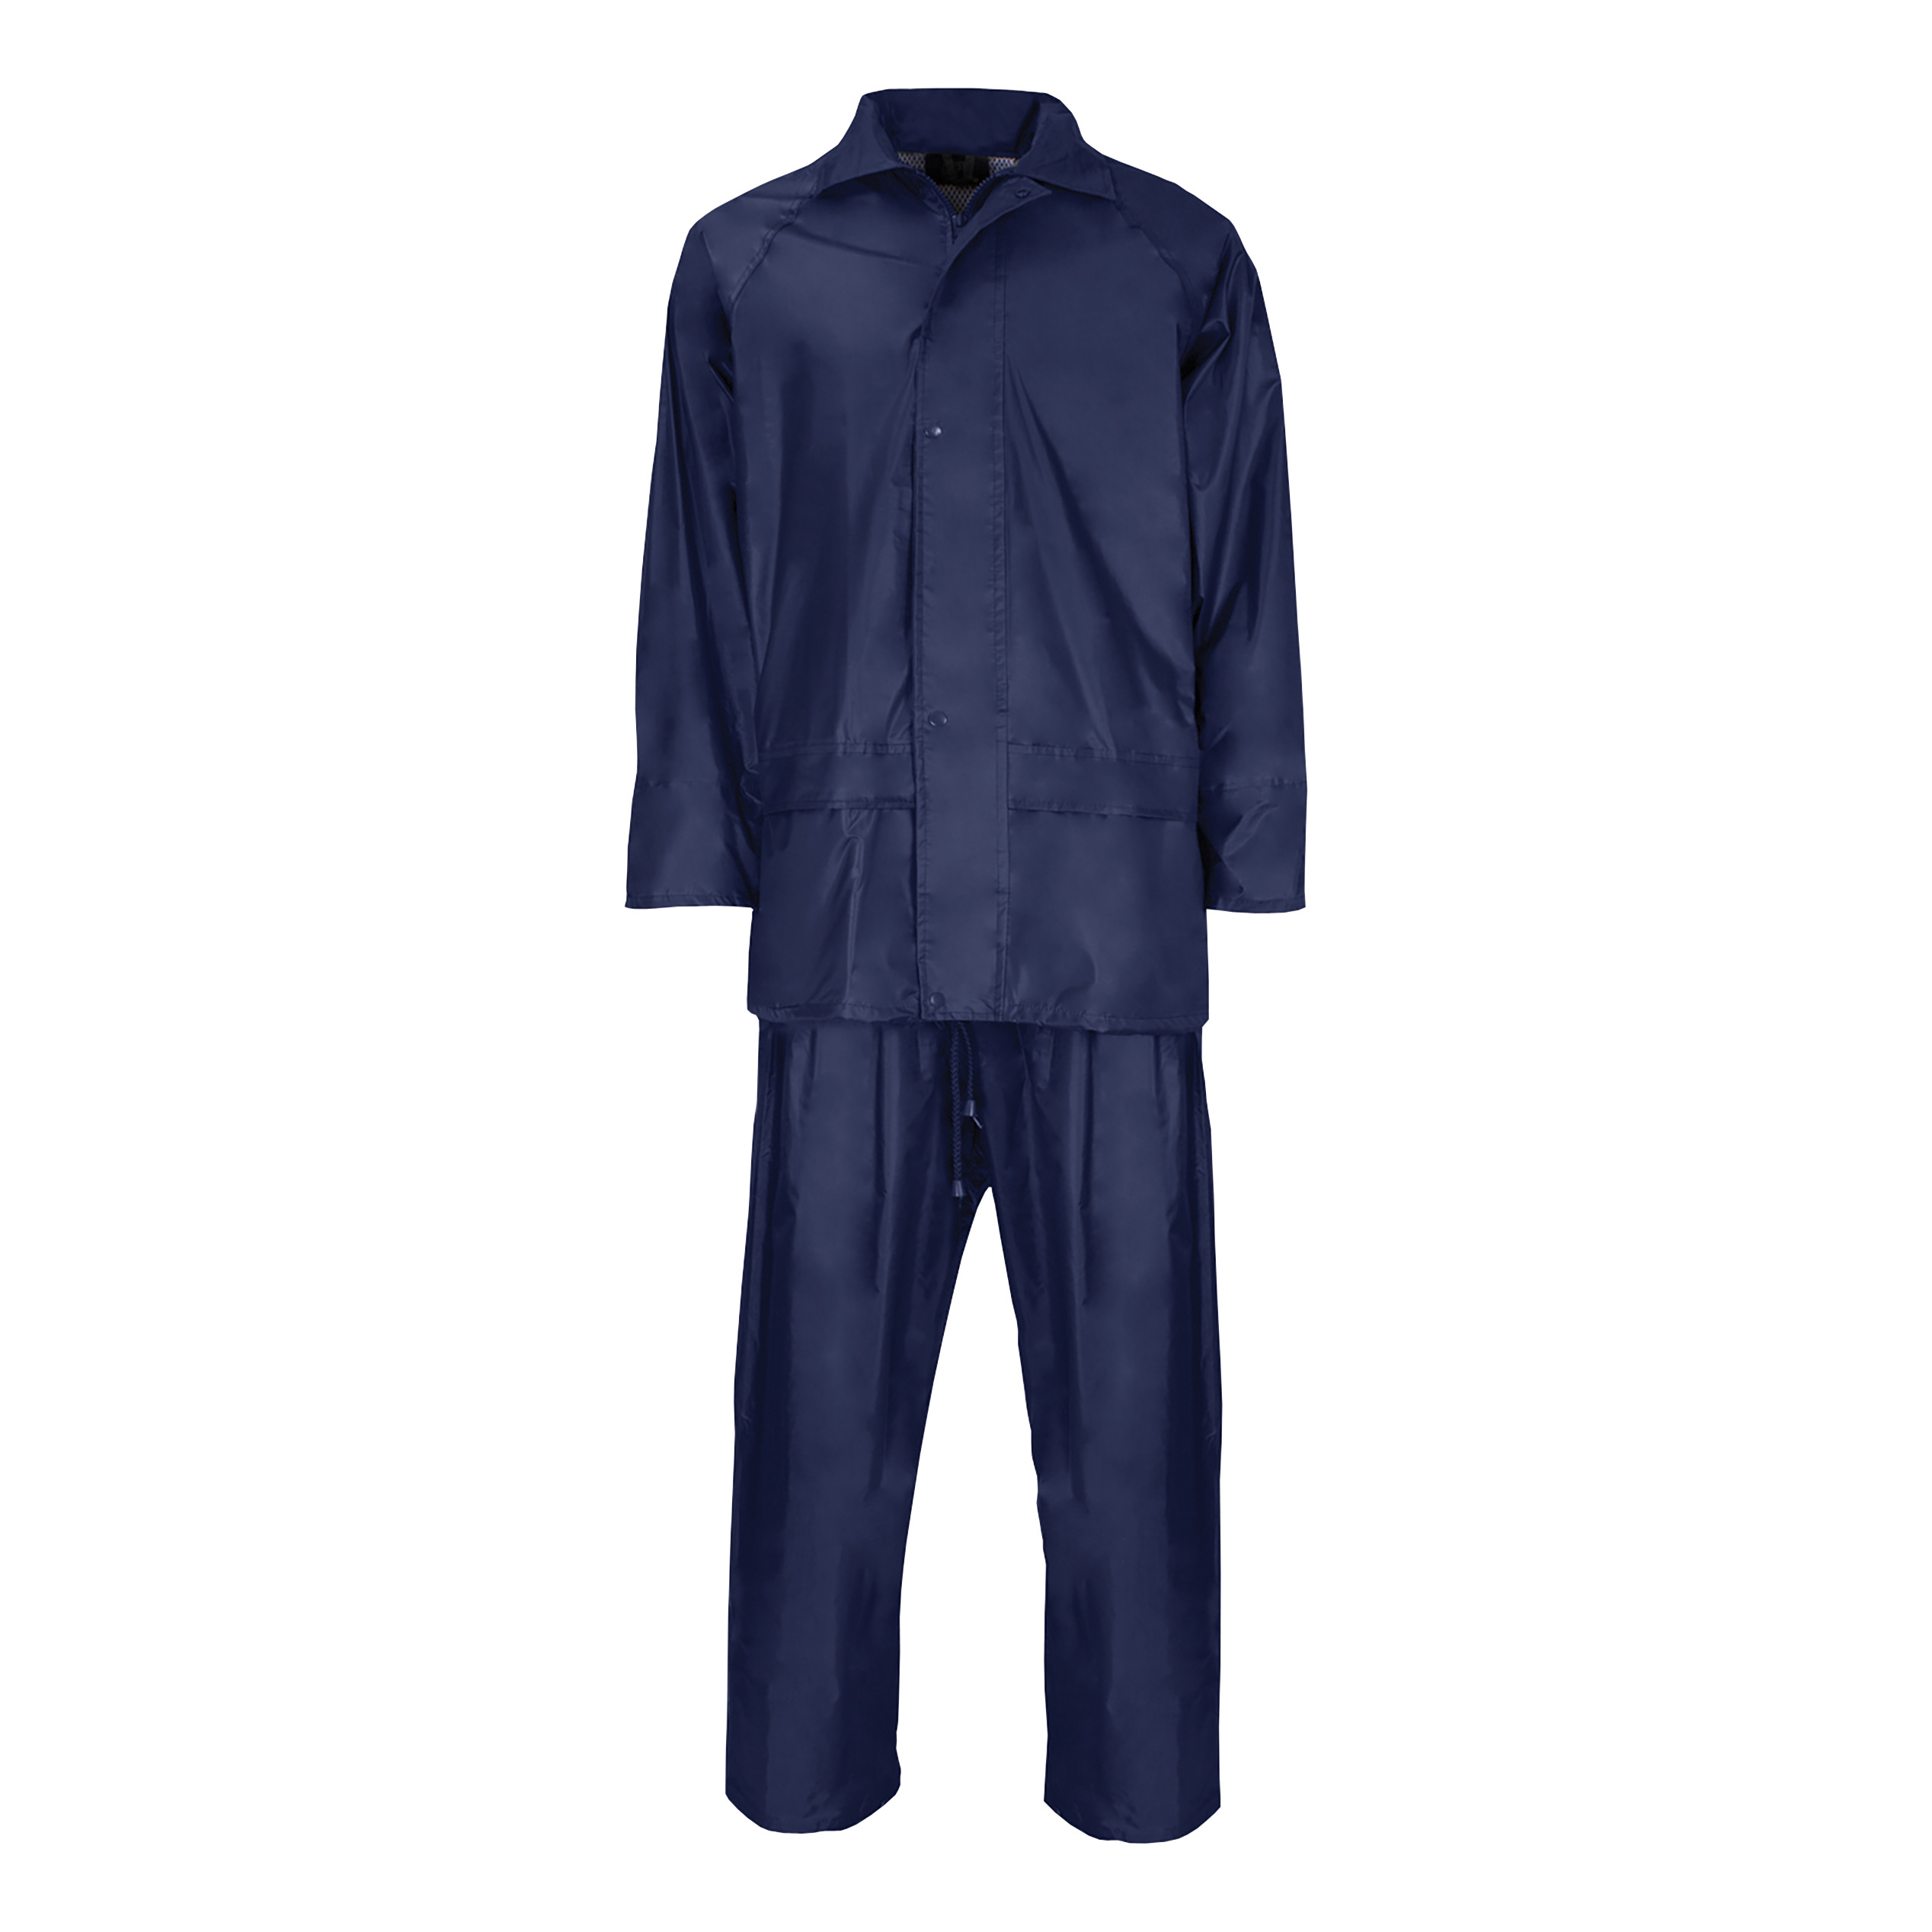 Weatherproof Rainsuit Poly/PVC with Elasticated Waisted Trousers 4XL Navy Ref NBDSN4XL *Approx 3 Day Leadtime*